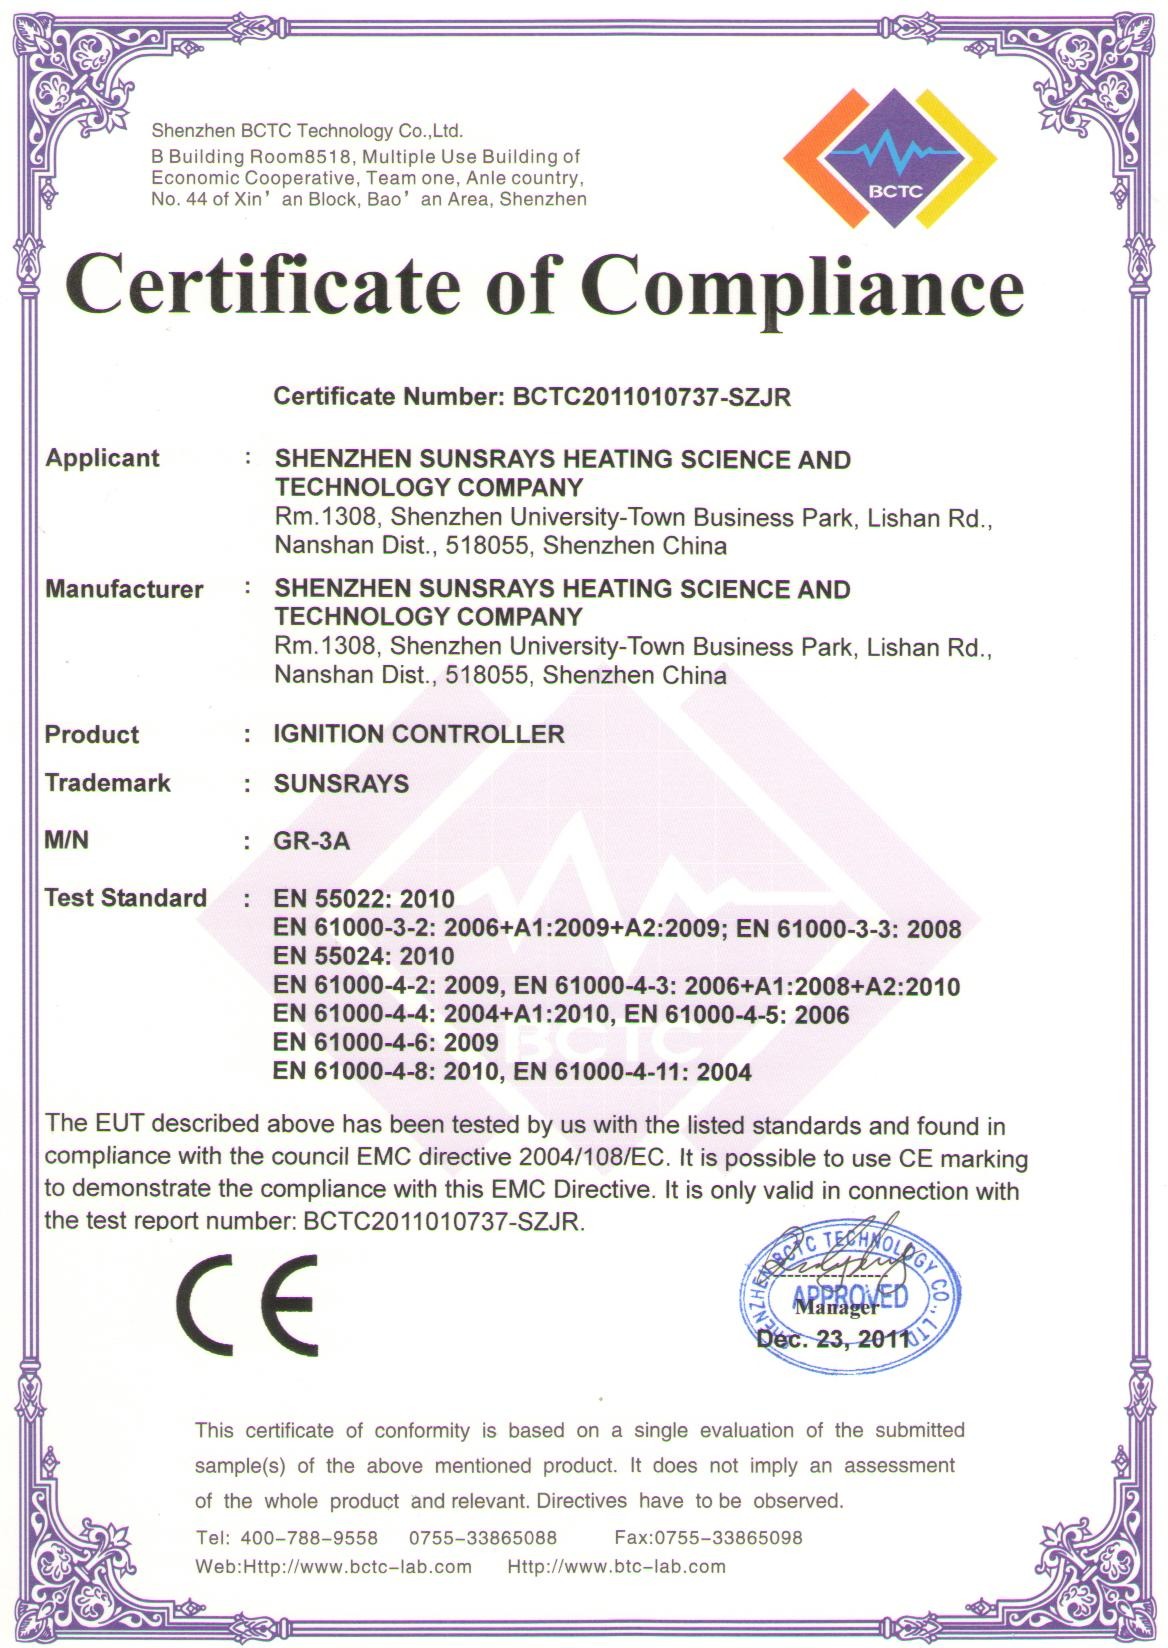 What is Certificate of Compliance